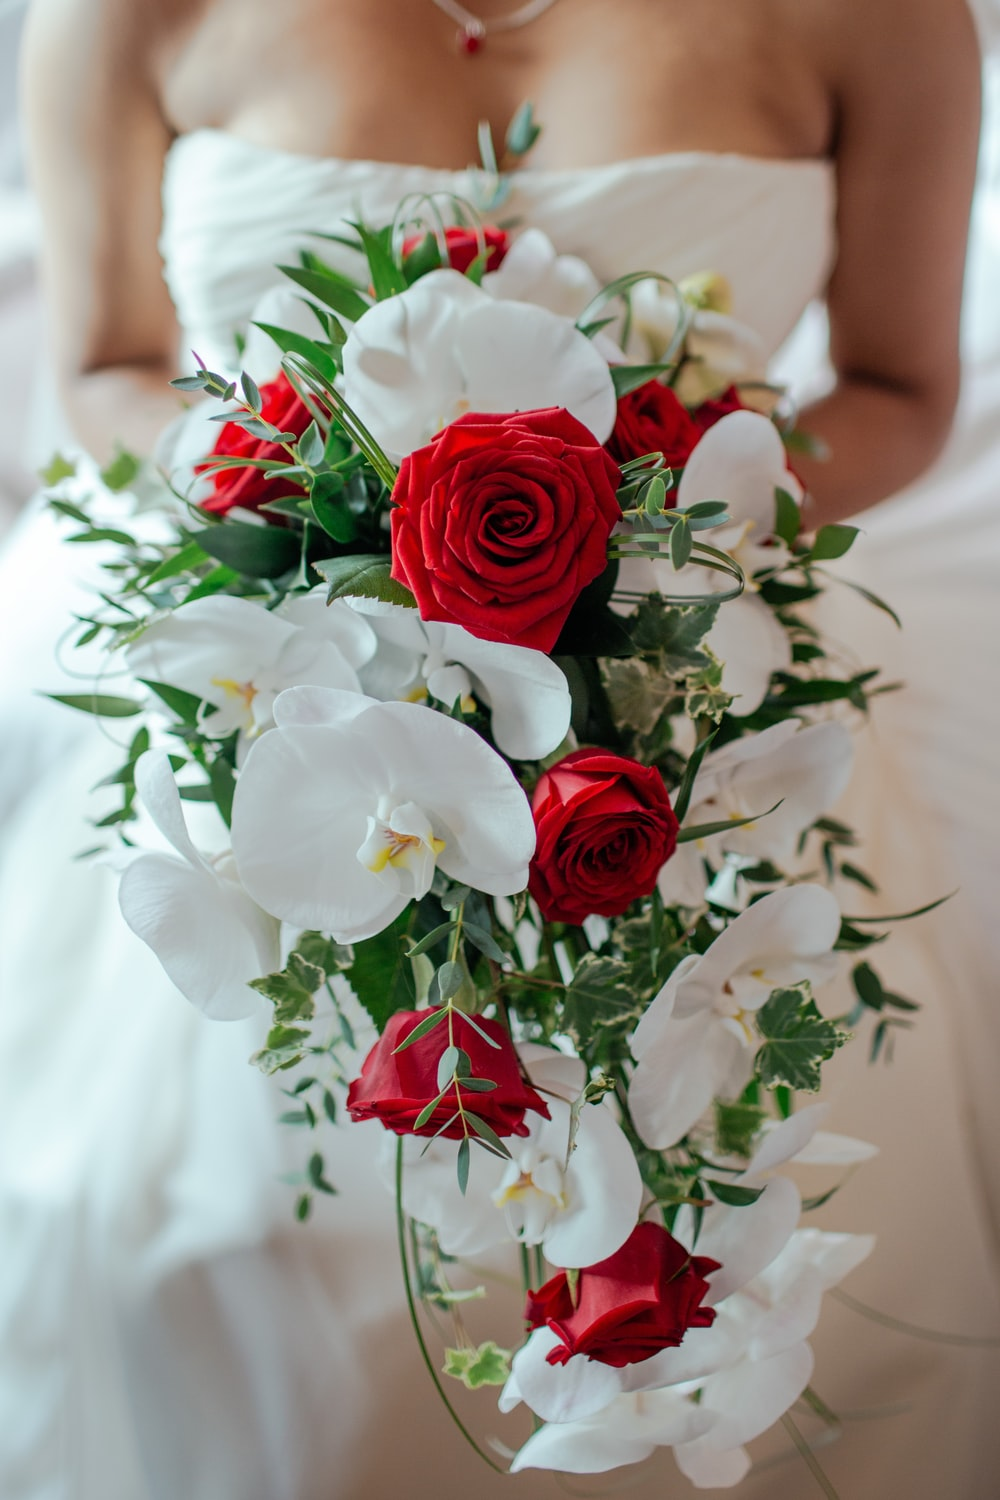 500 bouquet pictures download free images on unsplash red rose and white orchid bouquet izmirmasajfo